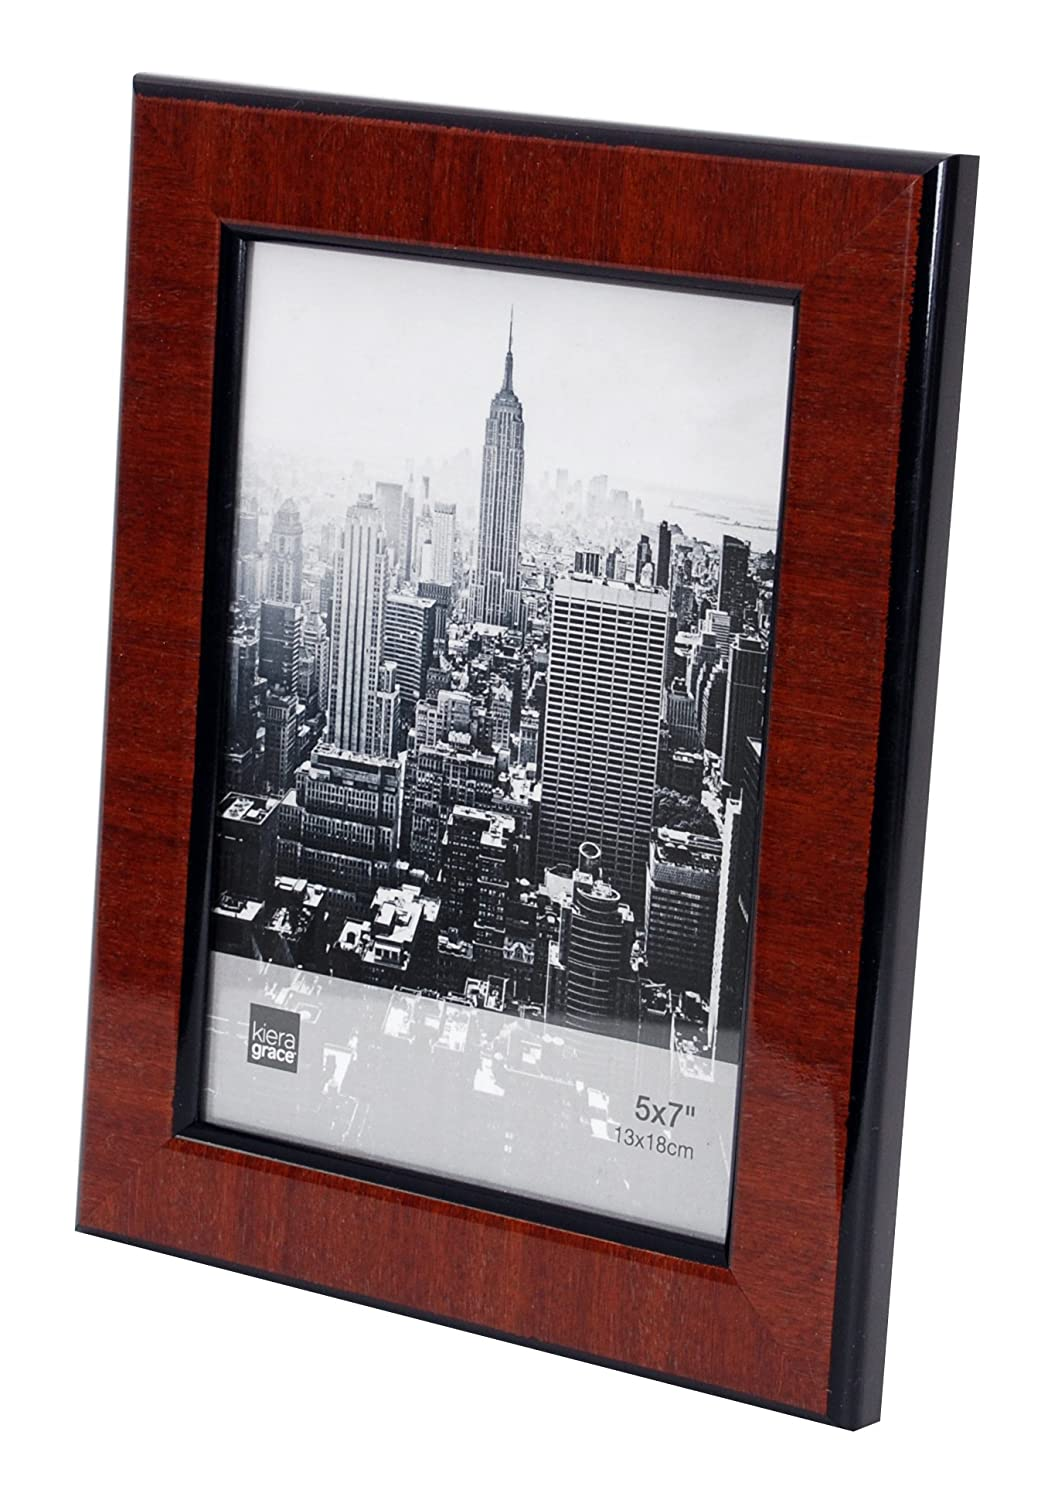 Walnut Wood Grain with Black Trim AZ Home and Gifts PH44025-9 5 by 7 Inch Kiera Grace Abby Picture Frame